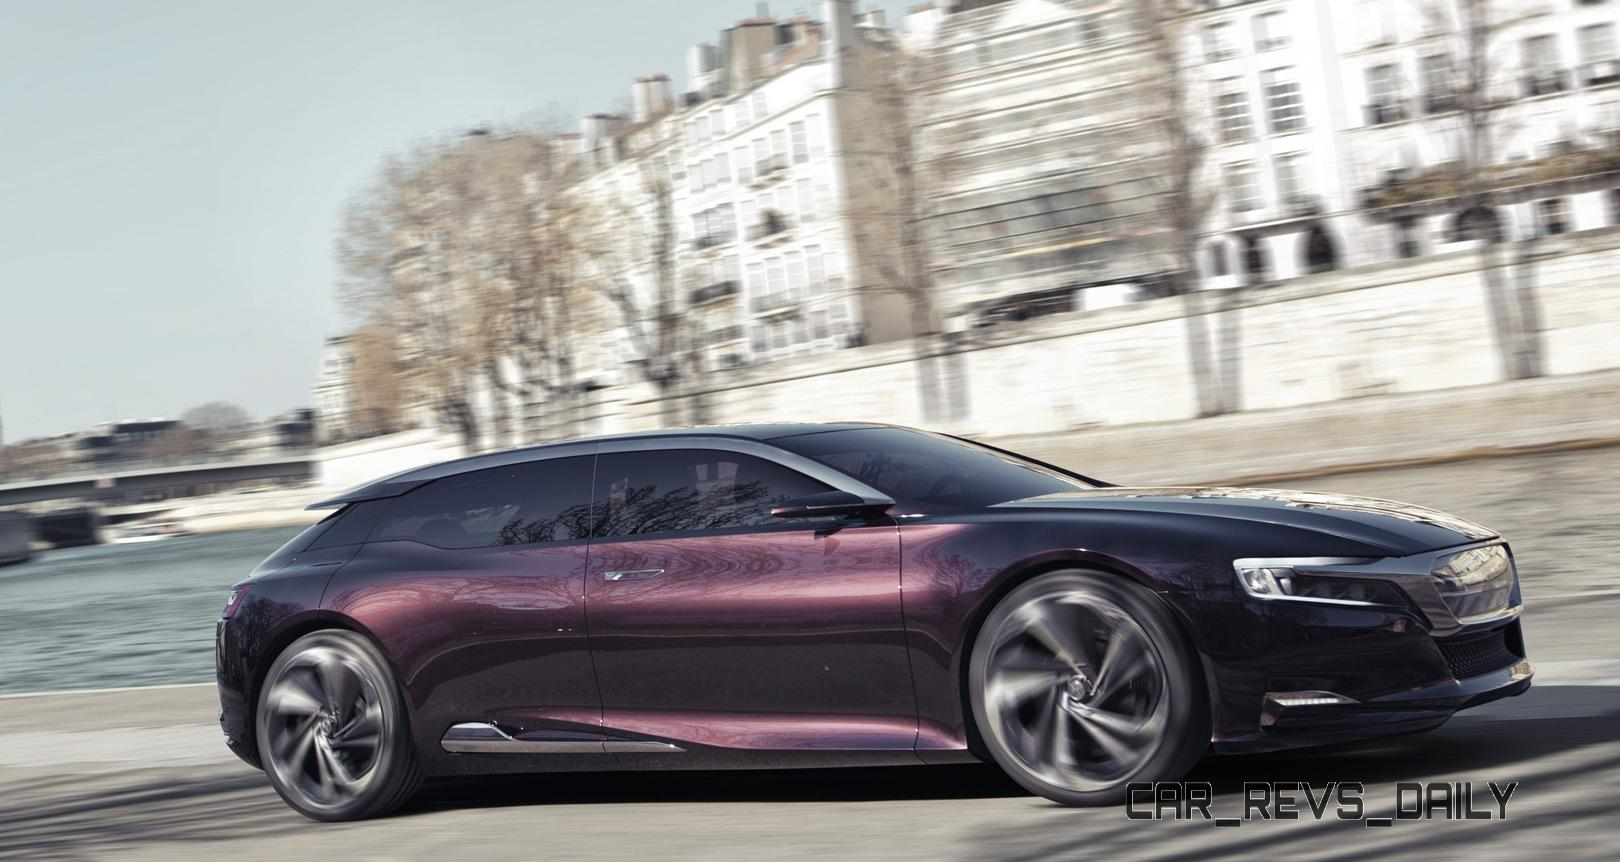 Concept Flashback 2012 Citroen Numero 9 Paves Way For HD Wallpapers Download free images and photos [musssic.tk]